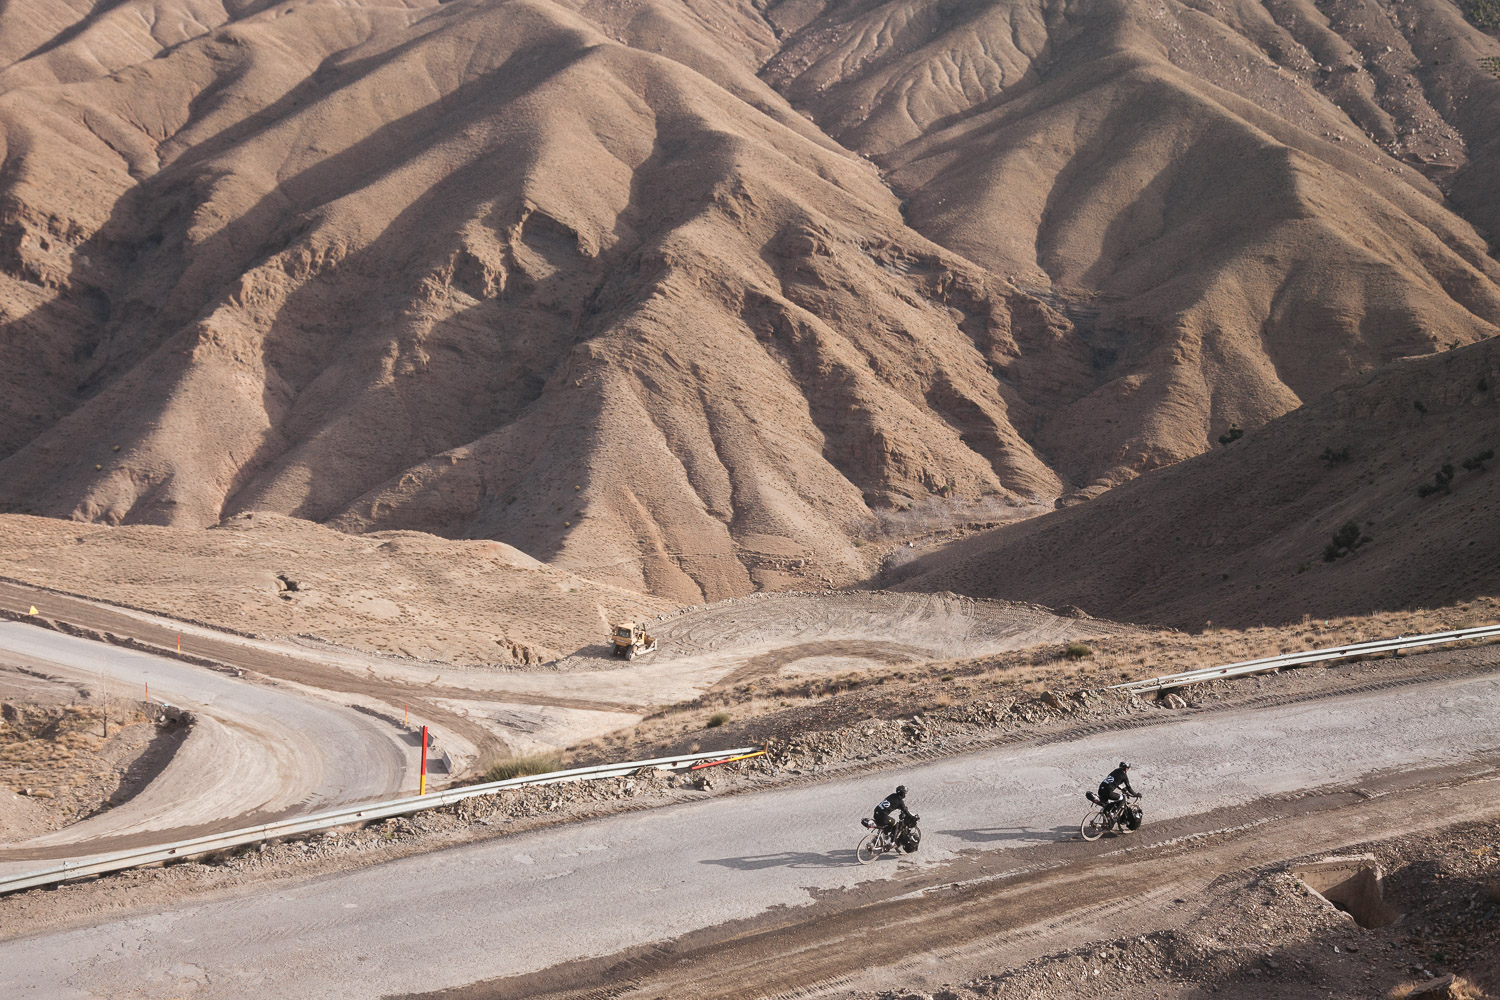 8bar bikes adventures morocco gravel 20151211 0001 bearbeitet - 8bar Adventures - Morocco - High Atlas - Part 2/2